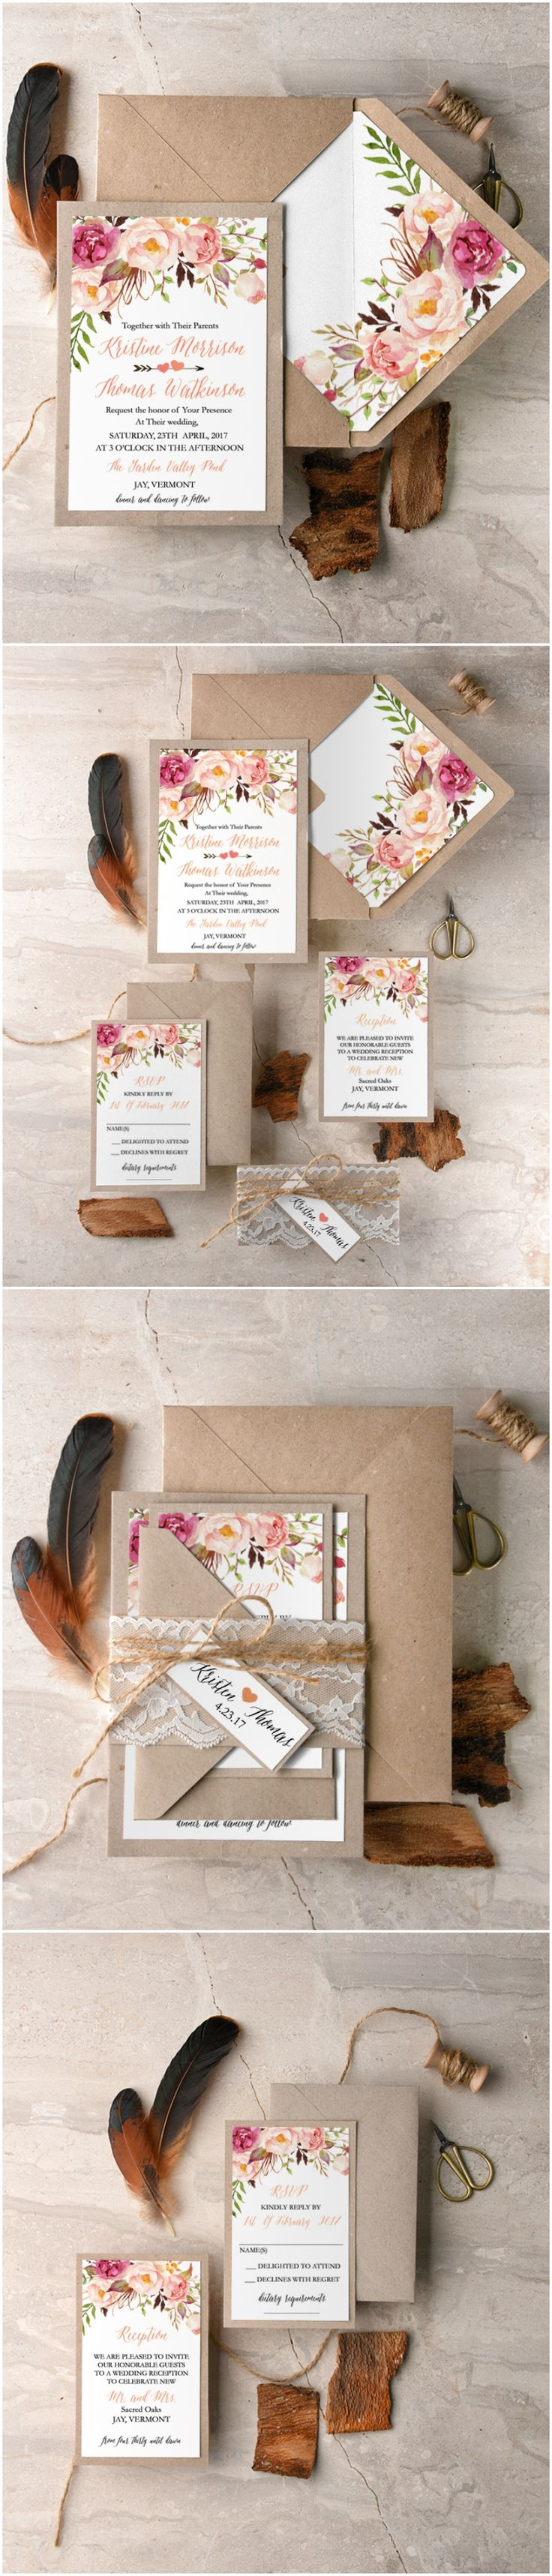 let our designers create dream wedding invitations especially for you - Papyrus Wedding Invitations